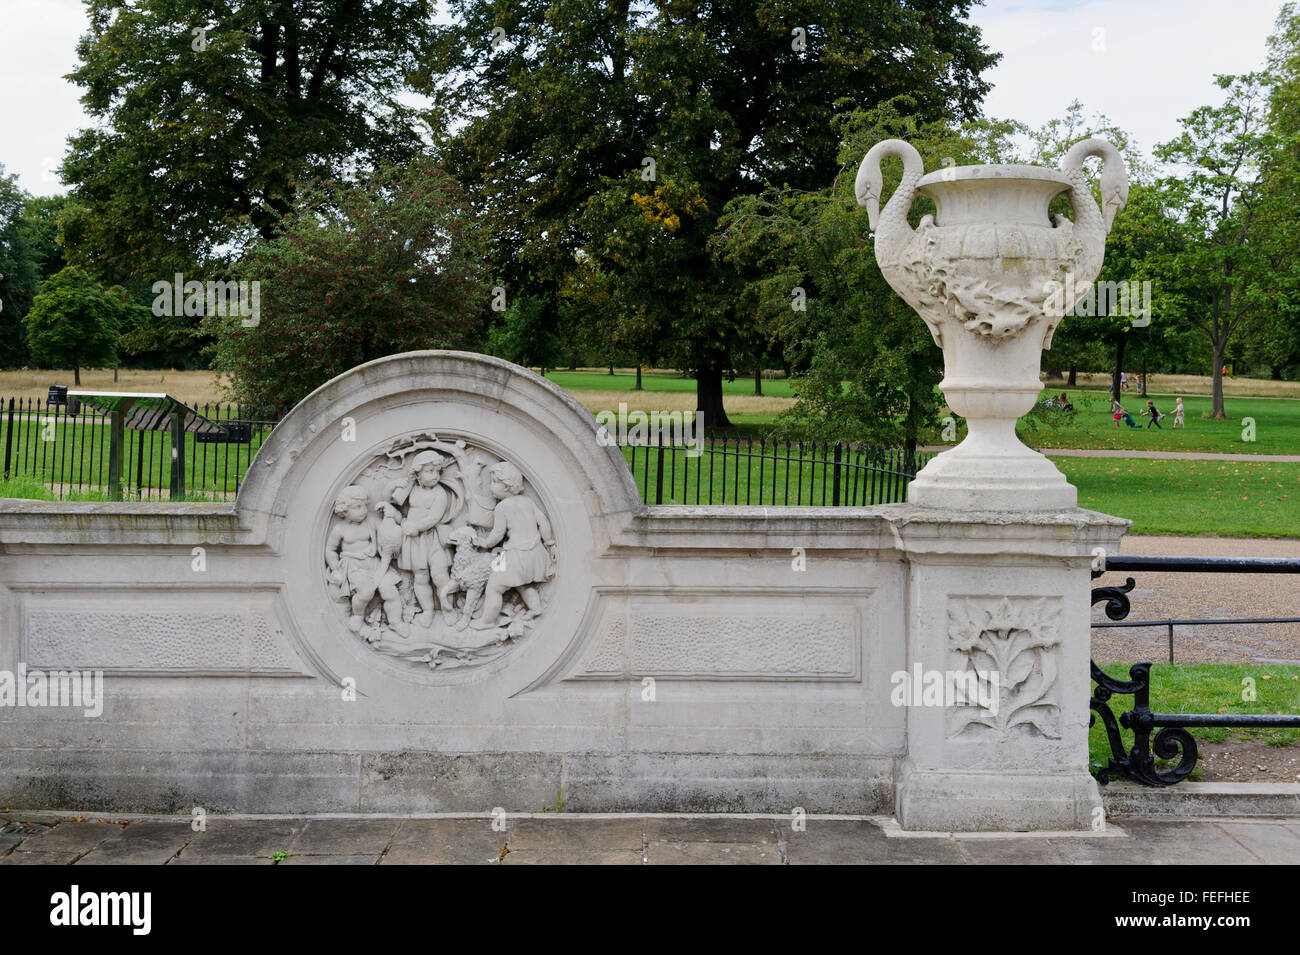 Stone carvings in the the Italian Gardens in Hyde Park, London, United Kingdom. - Stock Image